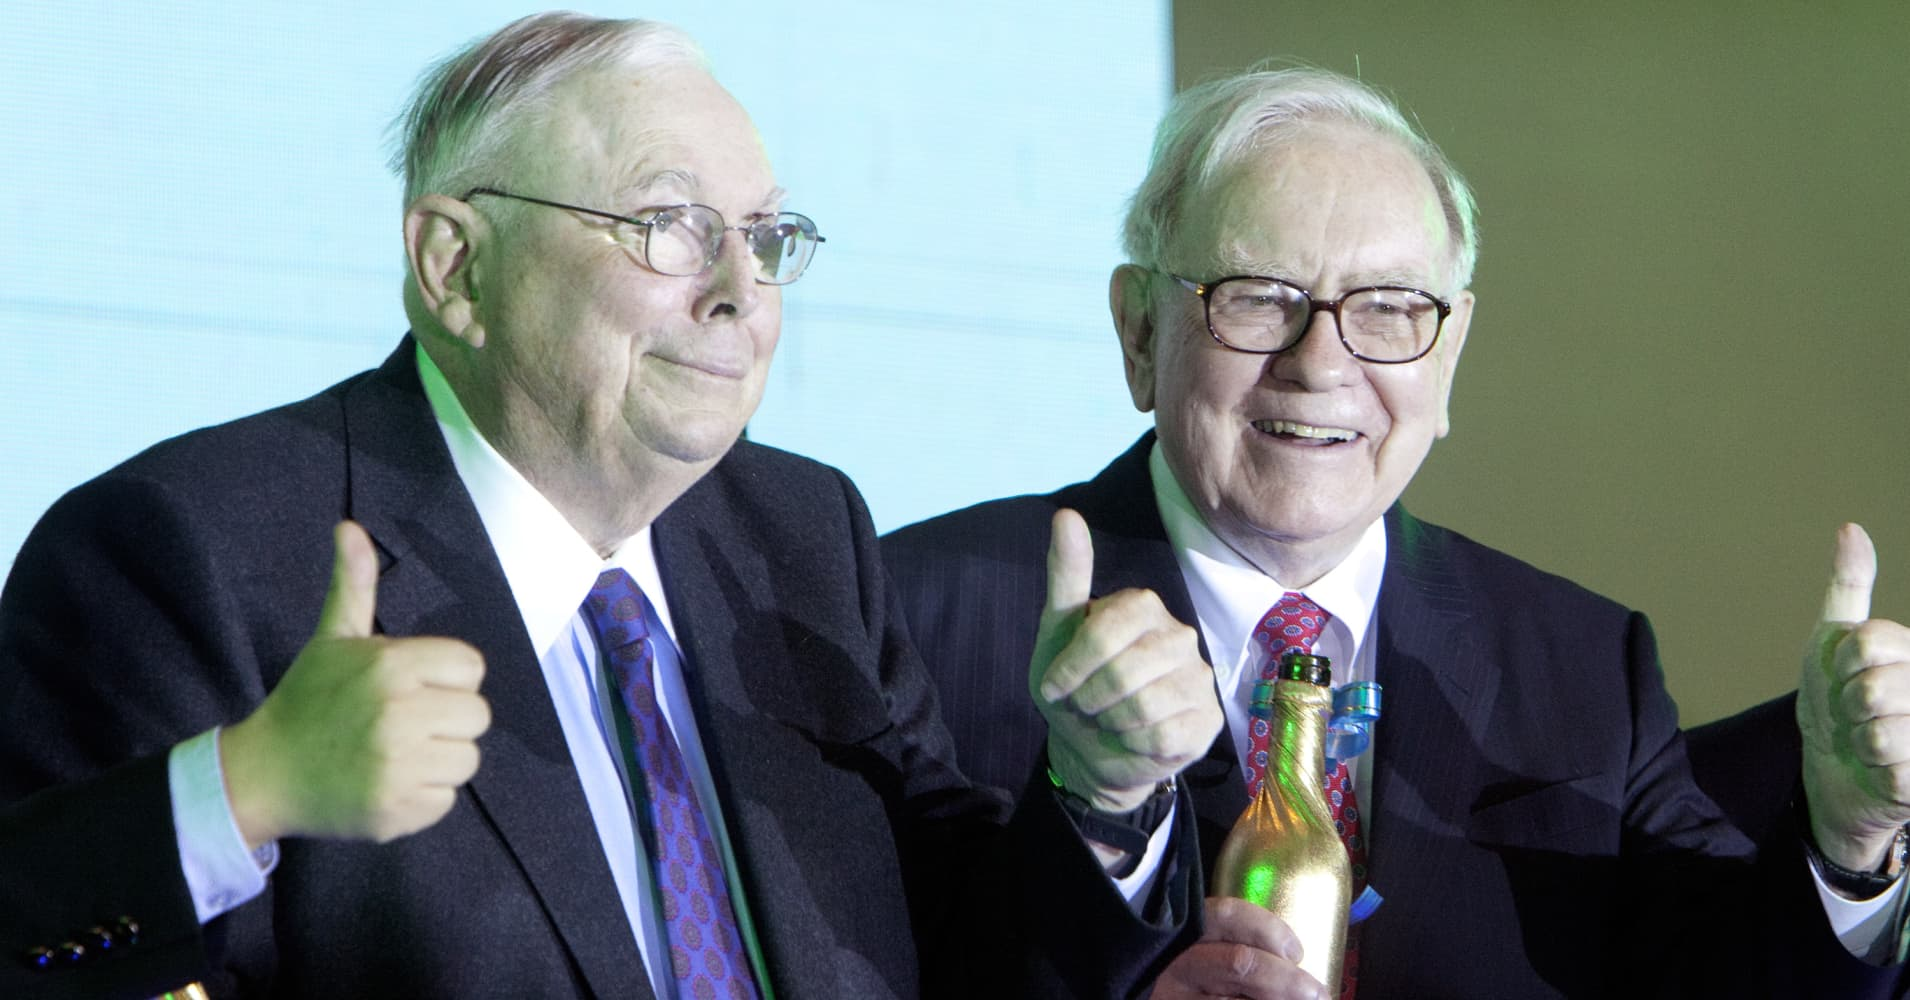 Warren Buffett and Charlie Munger: The Omaha ties that bind